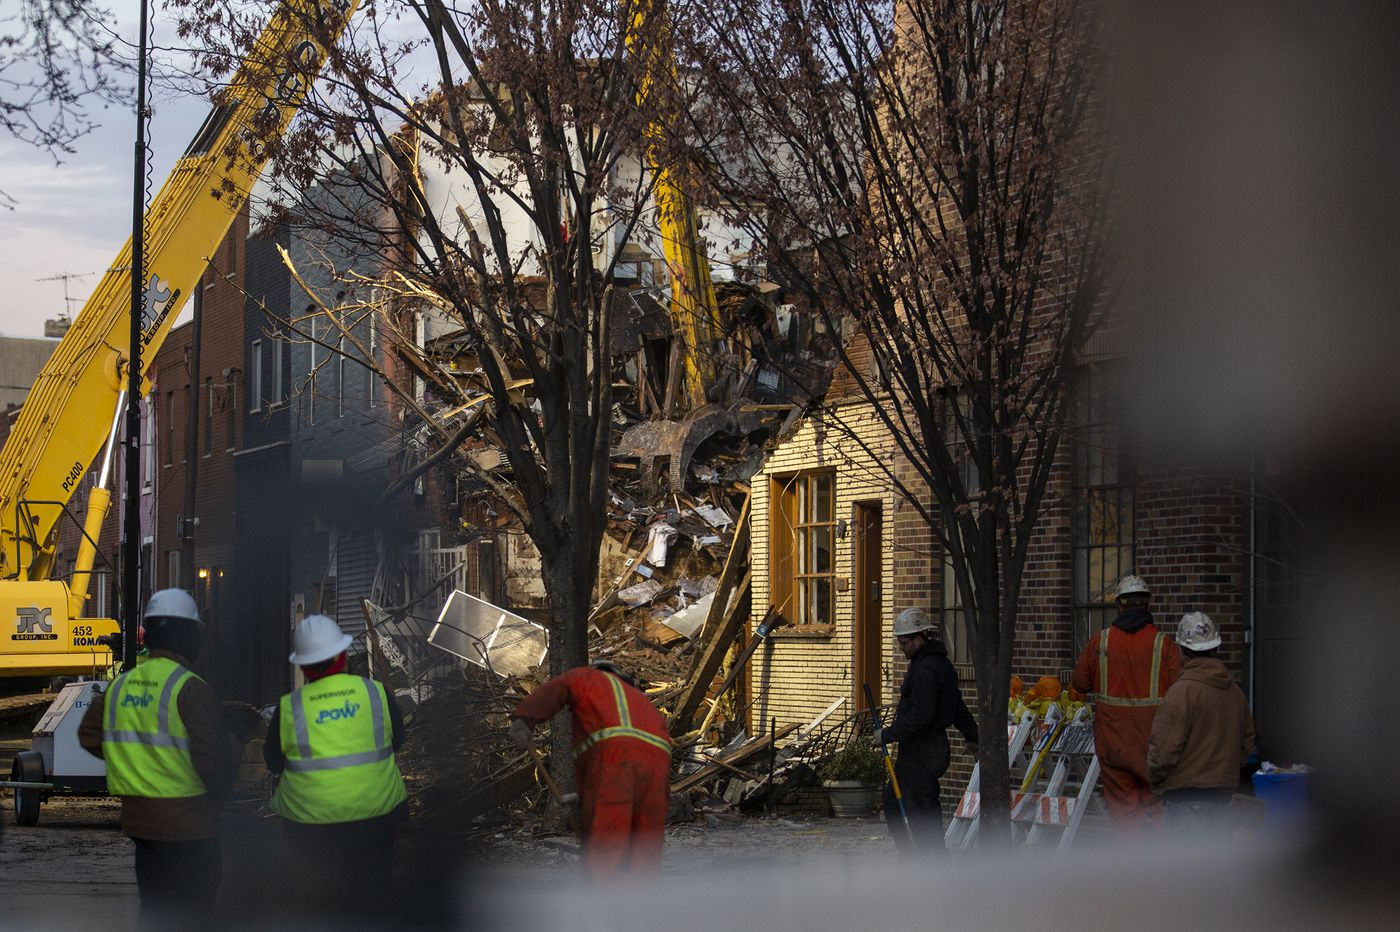 Second body found in South Philadelphia explosion debris as recovery efforts continue